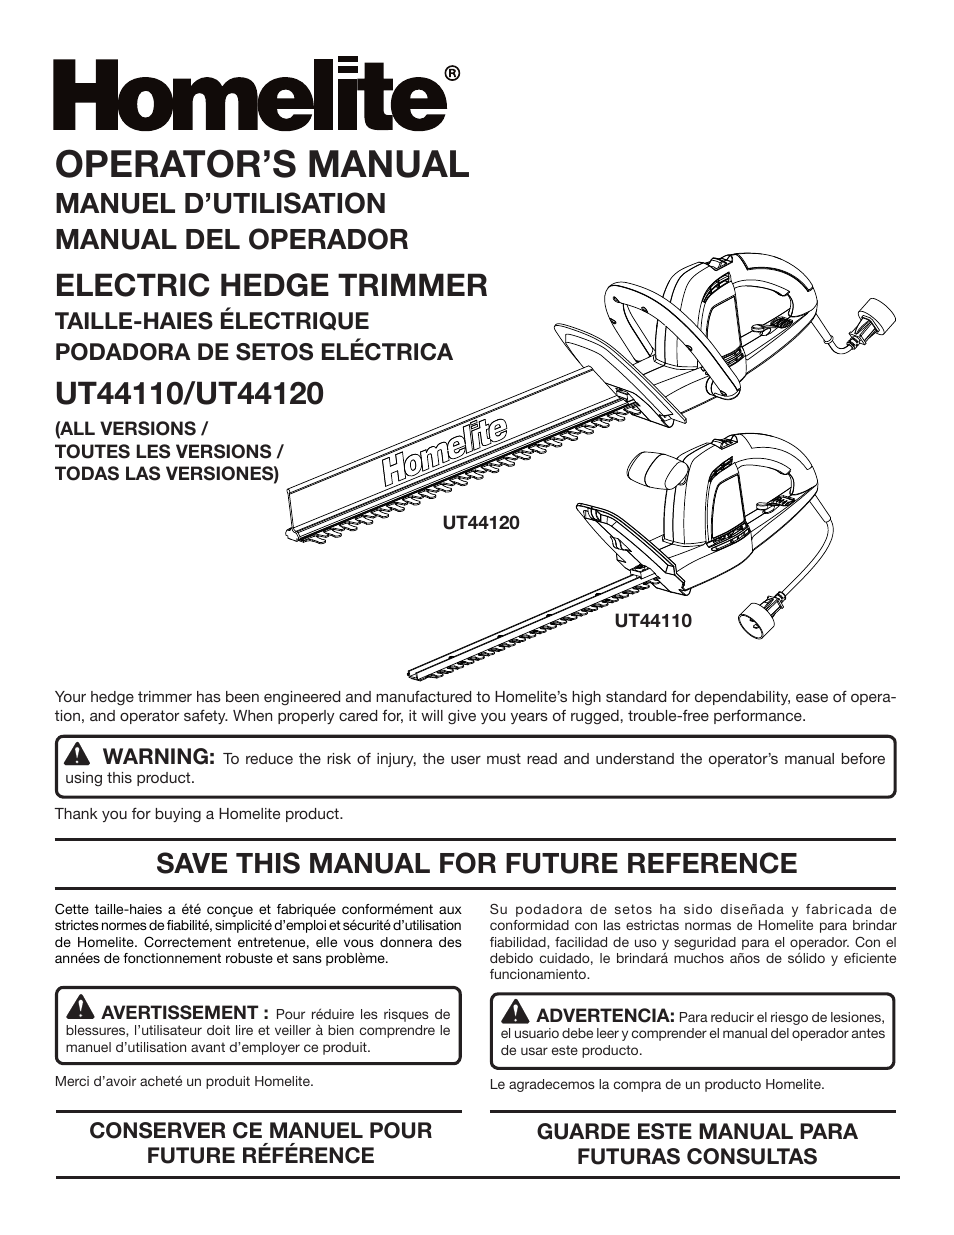 Homelite UT44120 User Manual | 38 pages